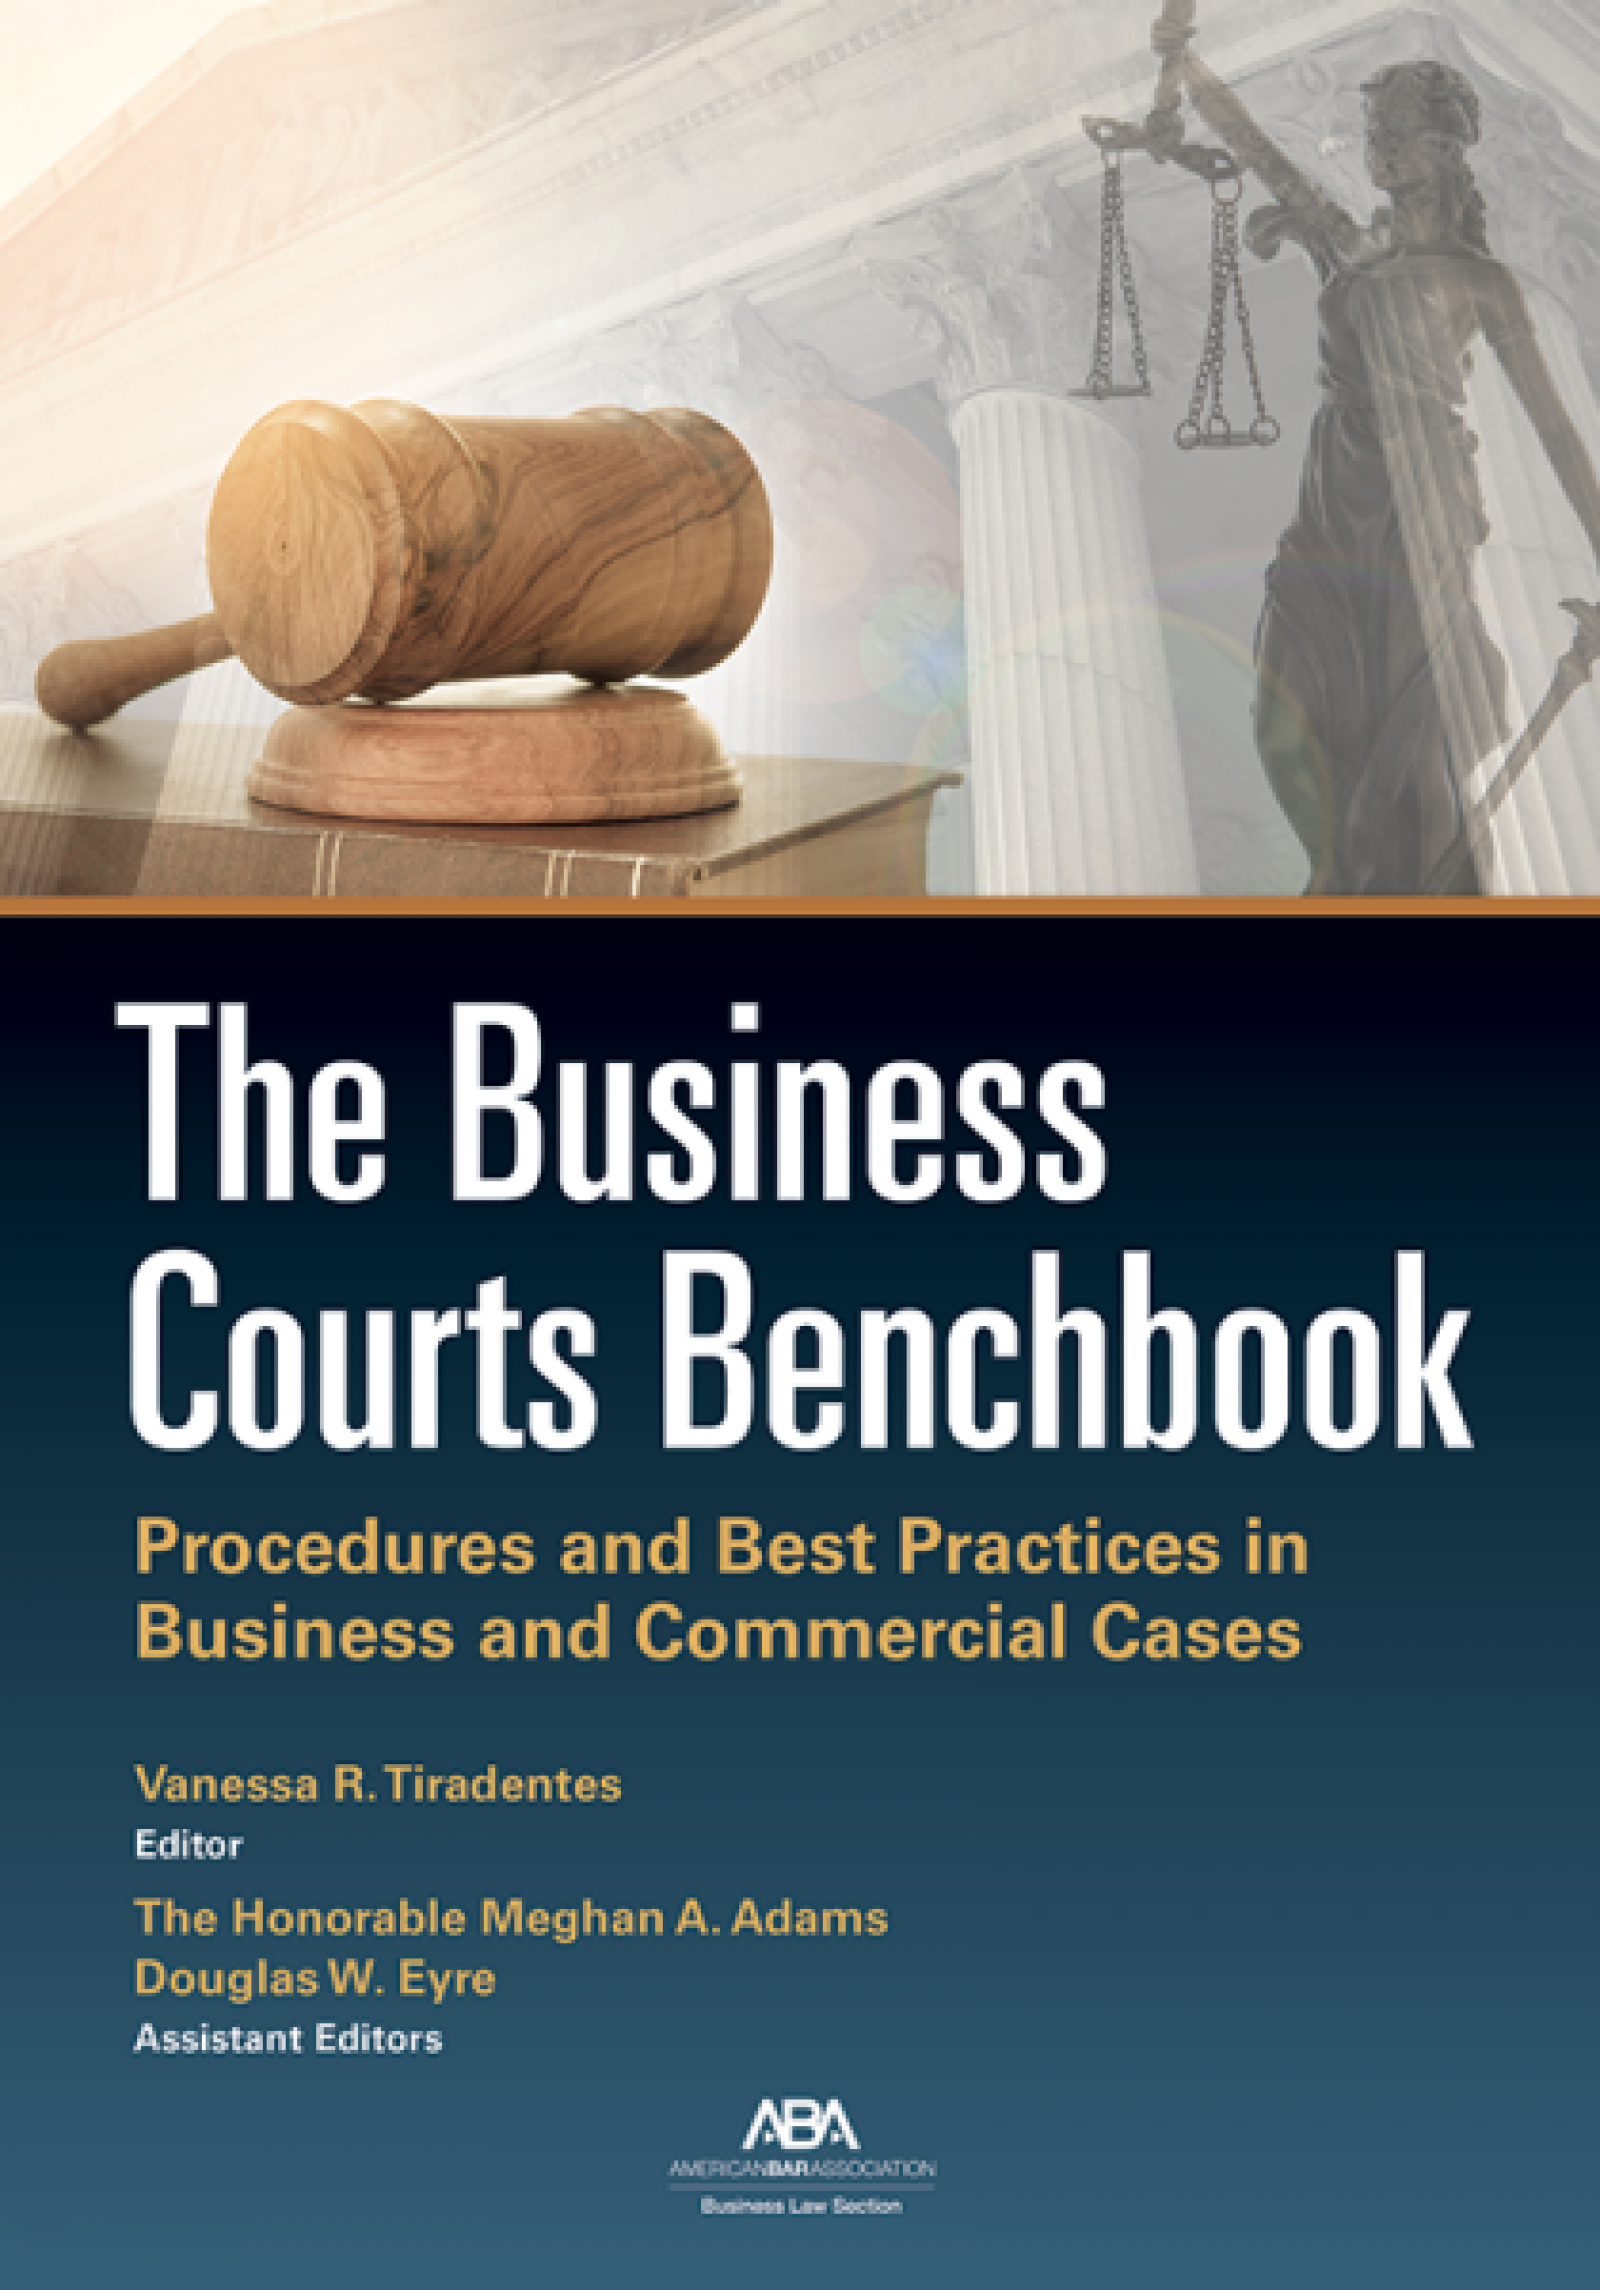 Business Courts Benchbook cover banner image